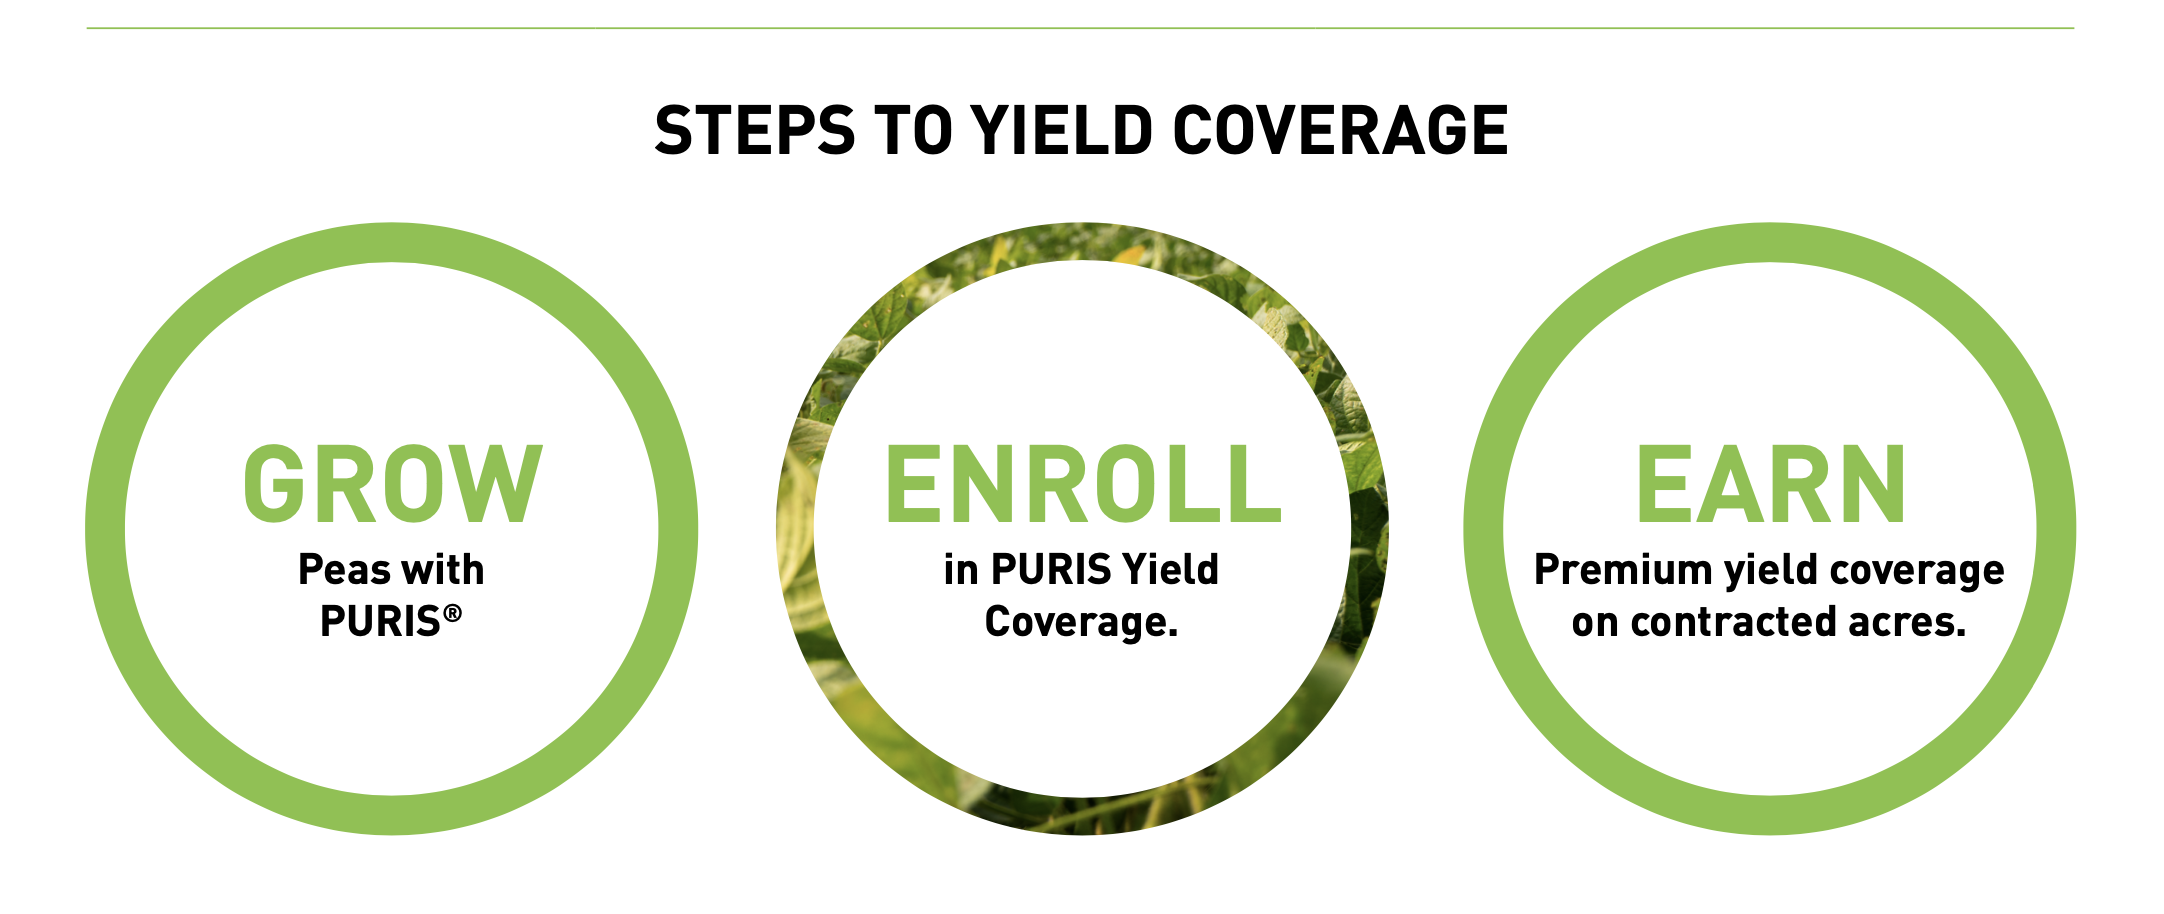 Grow, Enroll, and Earn with PURIS Crop Coverage